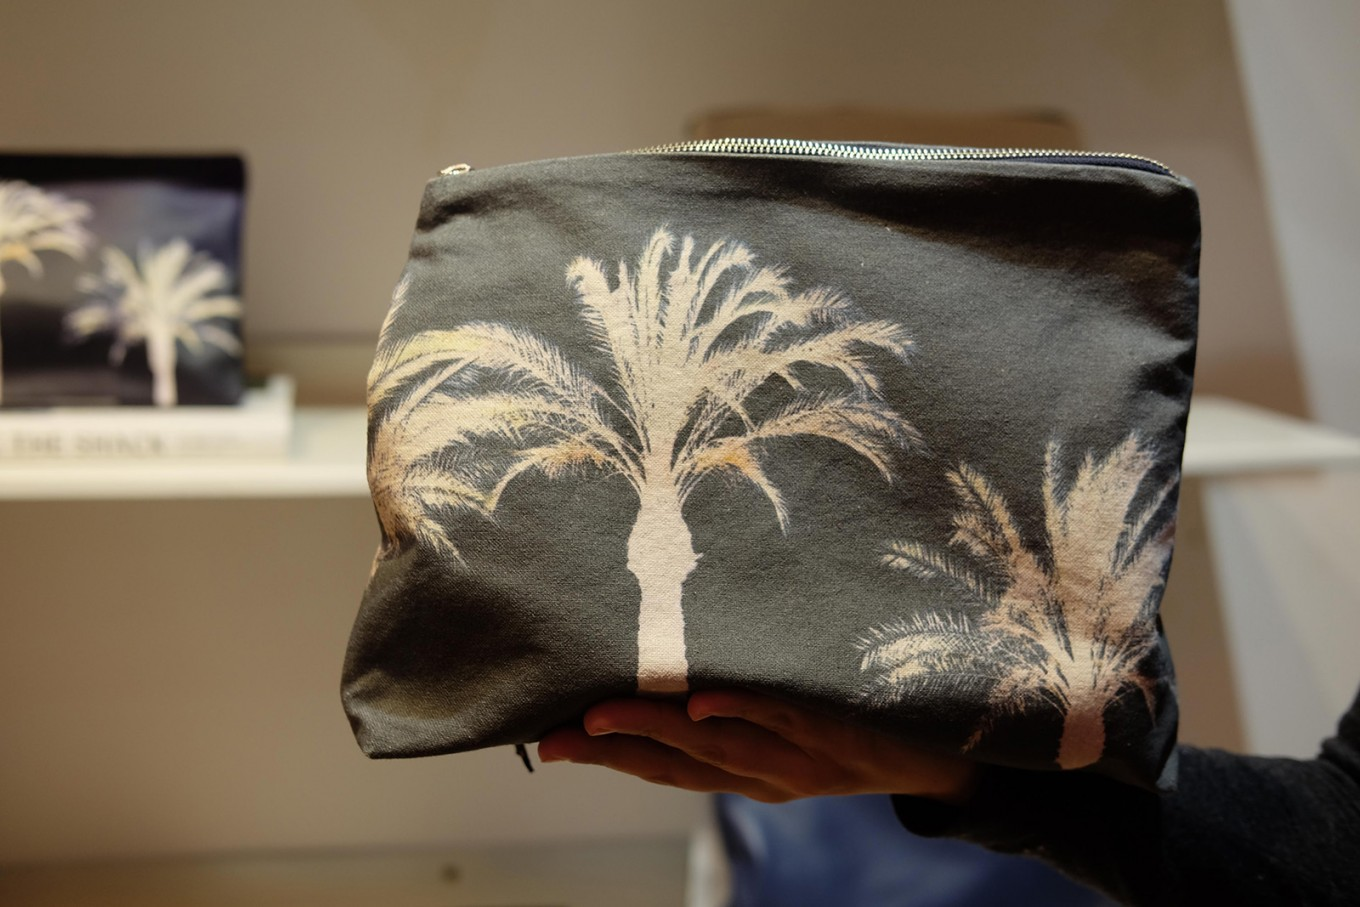 One of the canvas bags made by Zubi Designs.